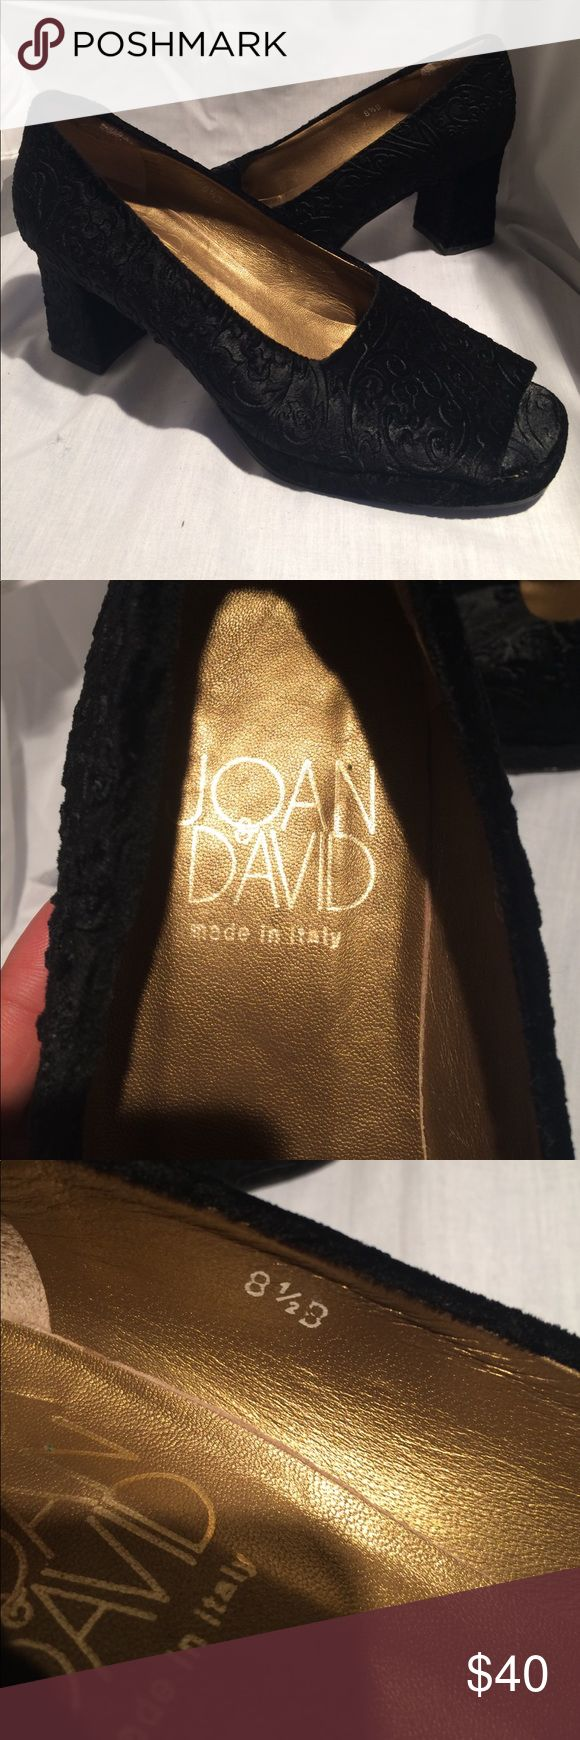 JOAN&DAVID made in Italy 😍😍😍 Vintage JOAN&DAVID velvet heels so cute in person if you like style and different 😍😍😍size 8 1/2 great condition I love them 😍😍😍 Joan & David Shoes Heels